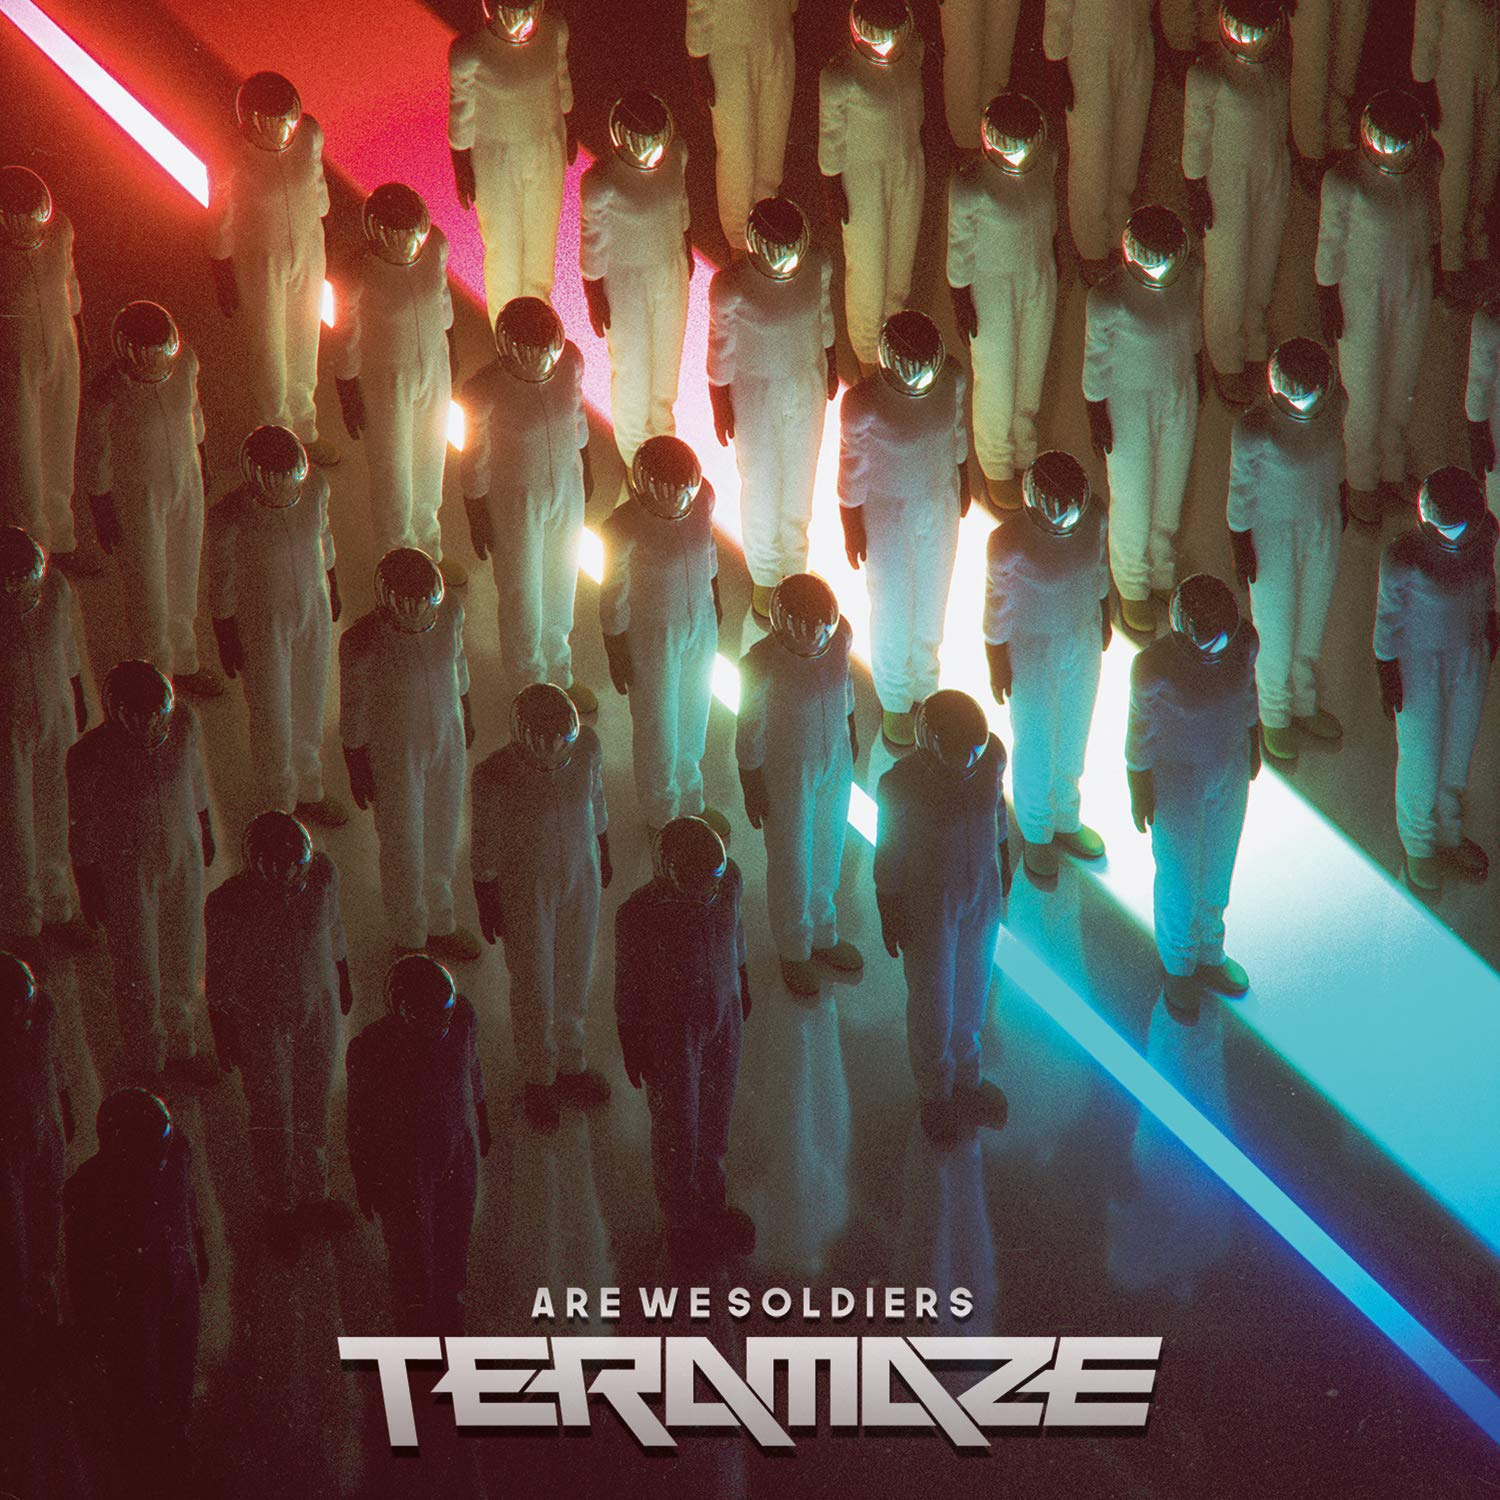 teramaze are we soldiers